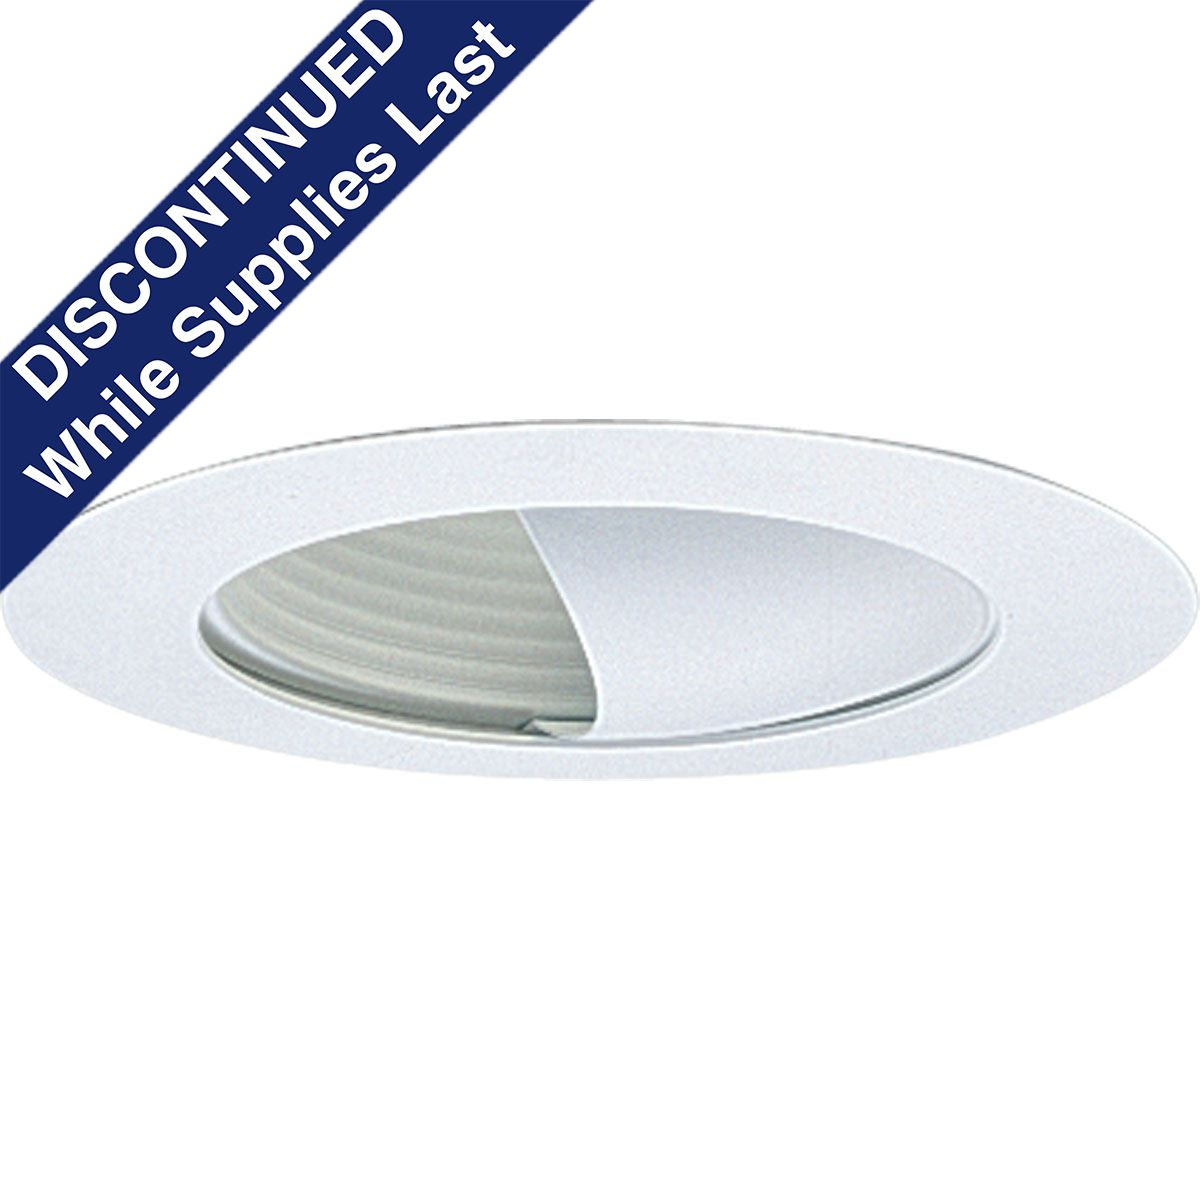 PROP8052-28 WALL WASHER; WHITE; 6 INCH NOMINAL APERTURE SIZE; ROUND APERTURE SHAPE; A19 60 W INCANDESCENT LAMP; A19 40 W FLUORESCENT LAMP; INSULATED/NON INSULATED CEILING; SIZE 7 3/4 INCH DIA; PROGRESS LIGHTING[R] BRAND, PROGRESS